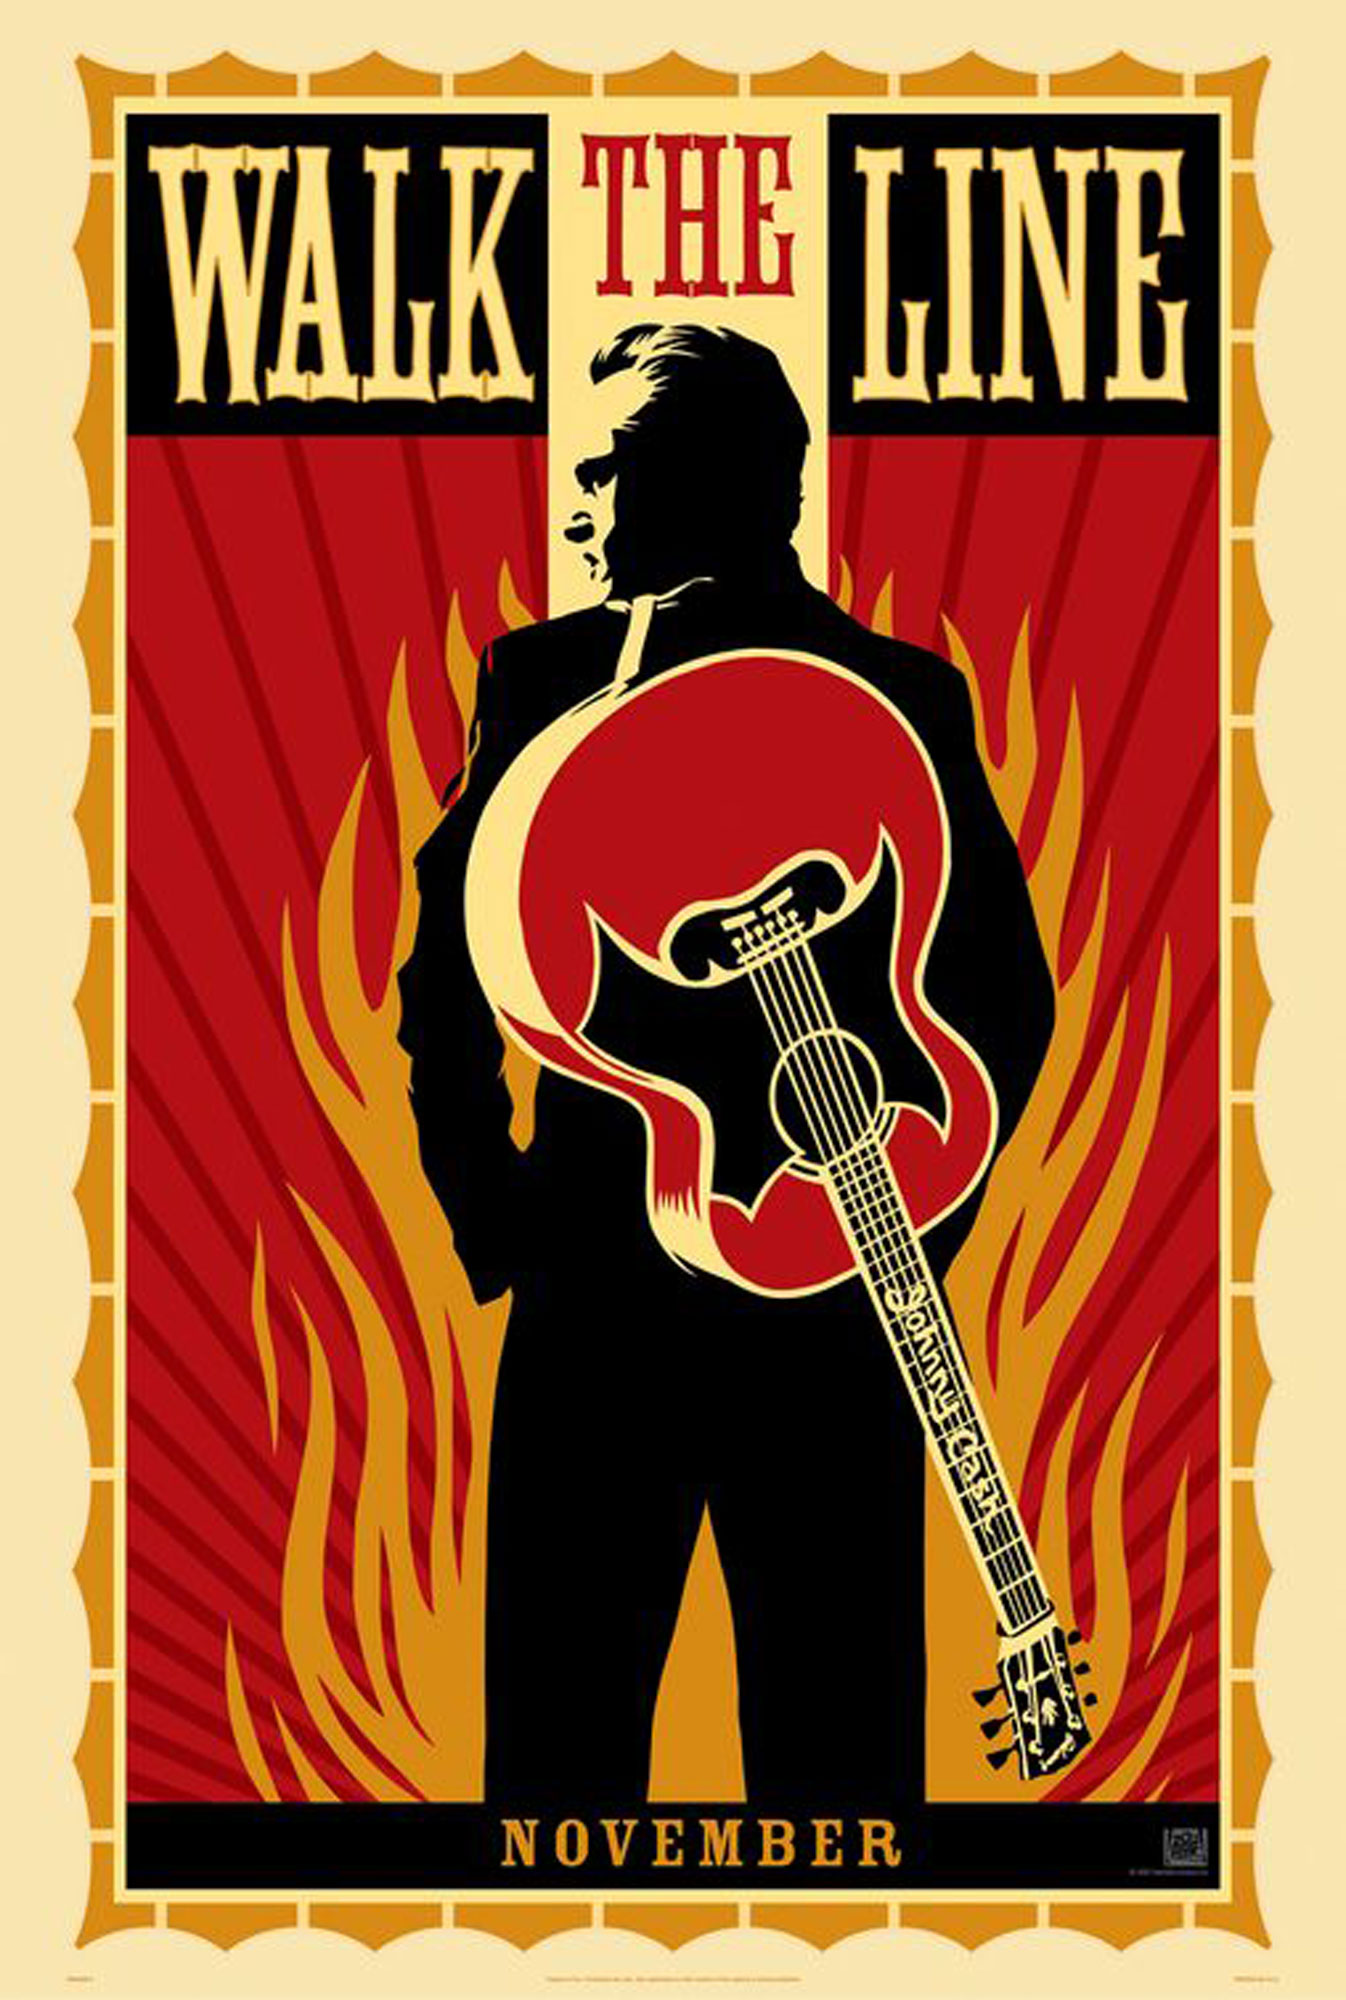 Johnny Cash - Poster - Walk the line